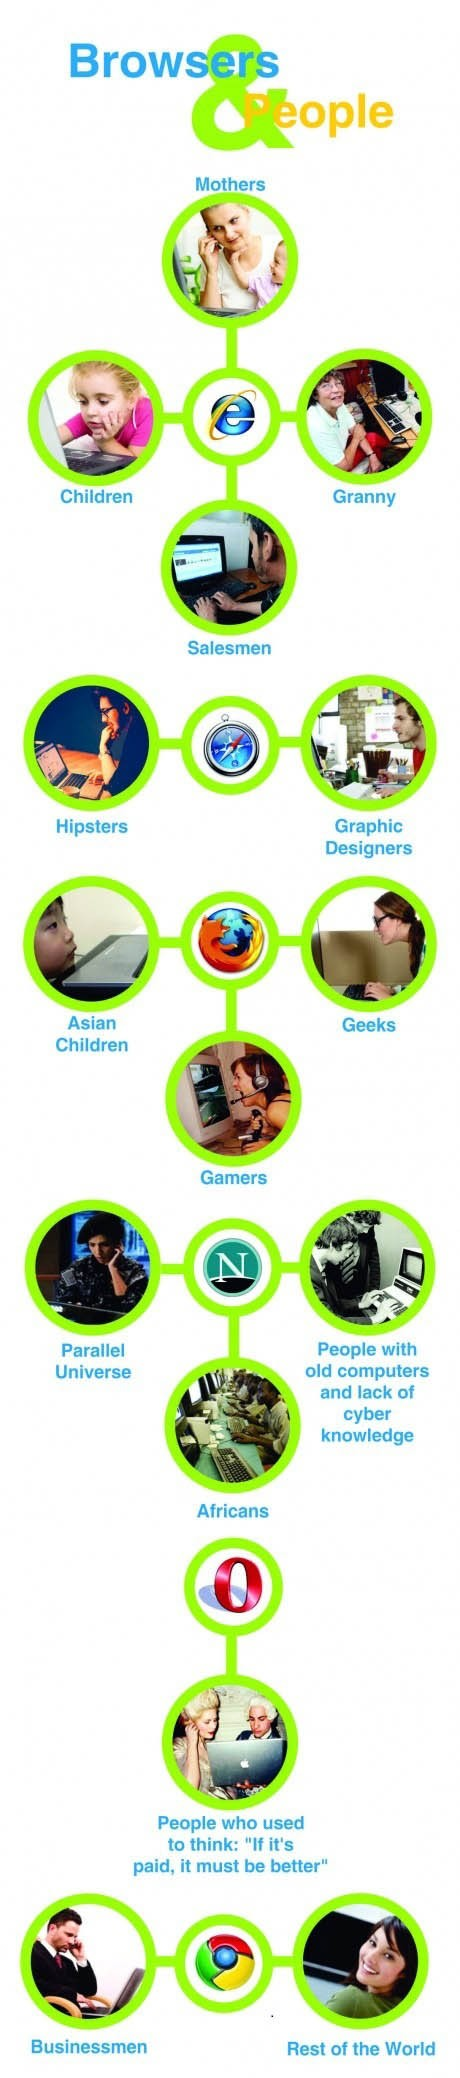 Web browsers and people